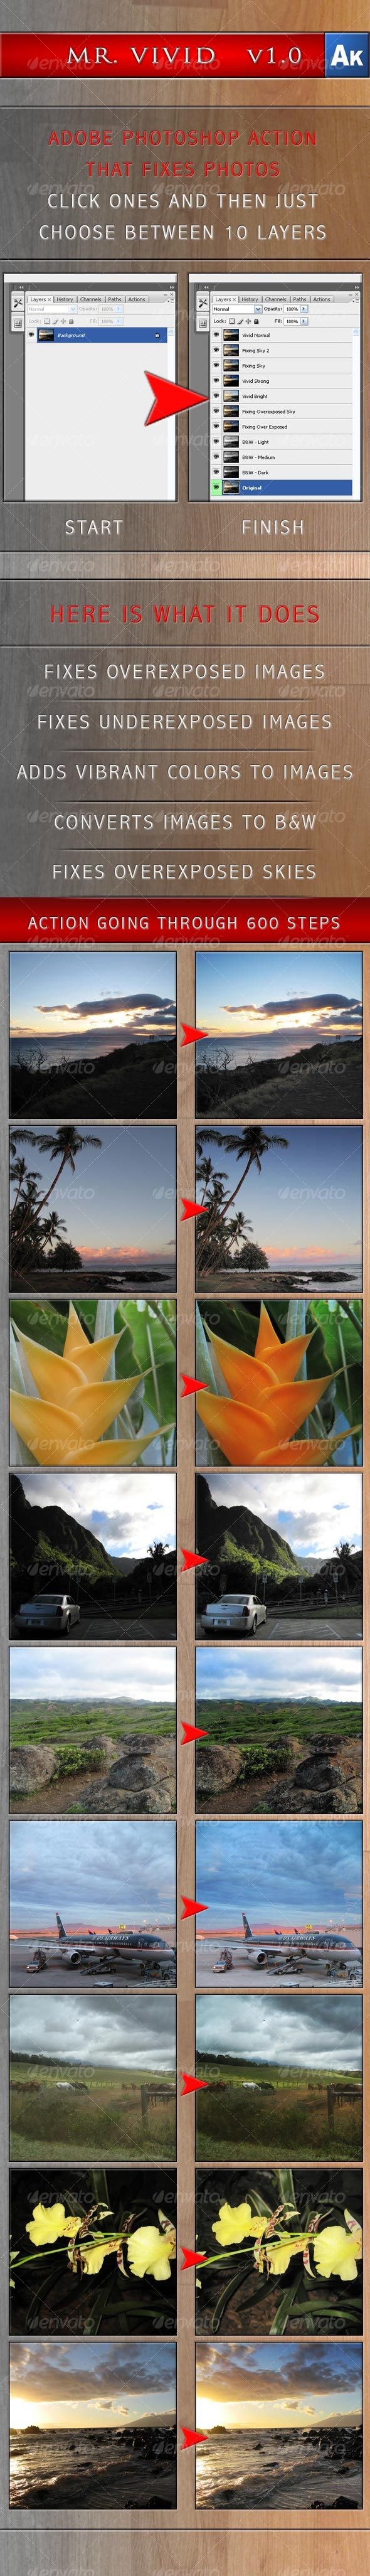 Mr. Vivid   v1.0 for Adobe Photoshop - Photo Effects Actions